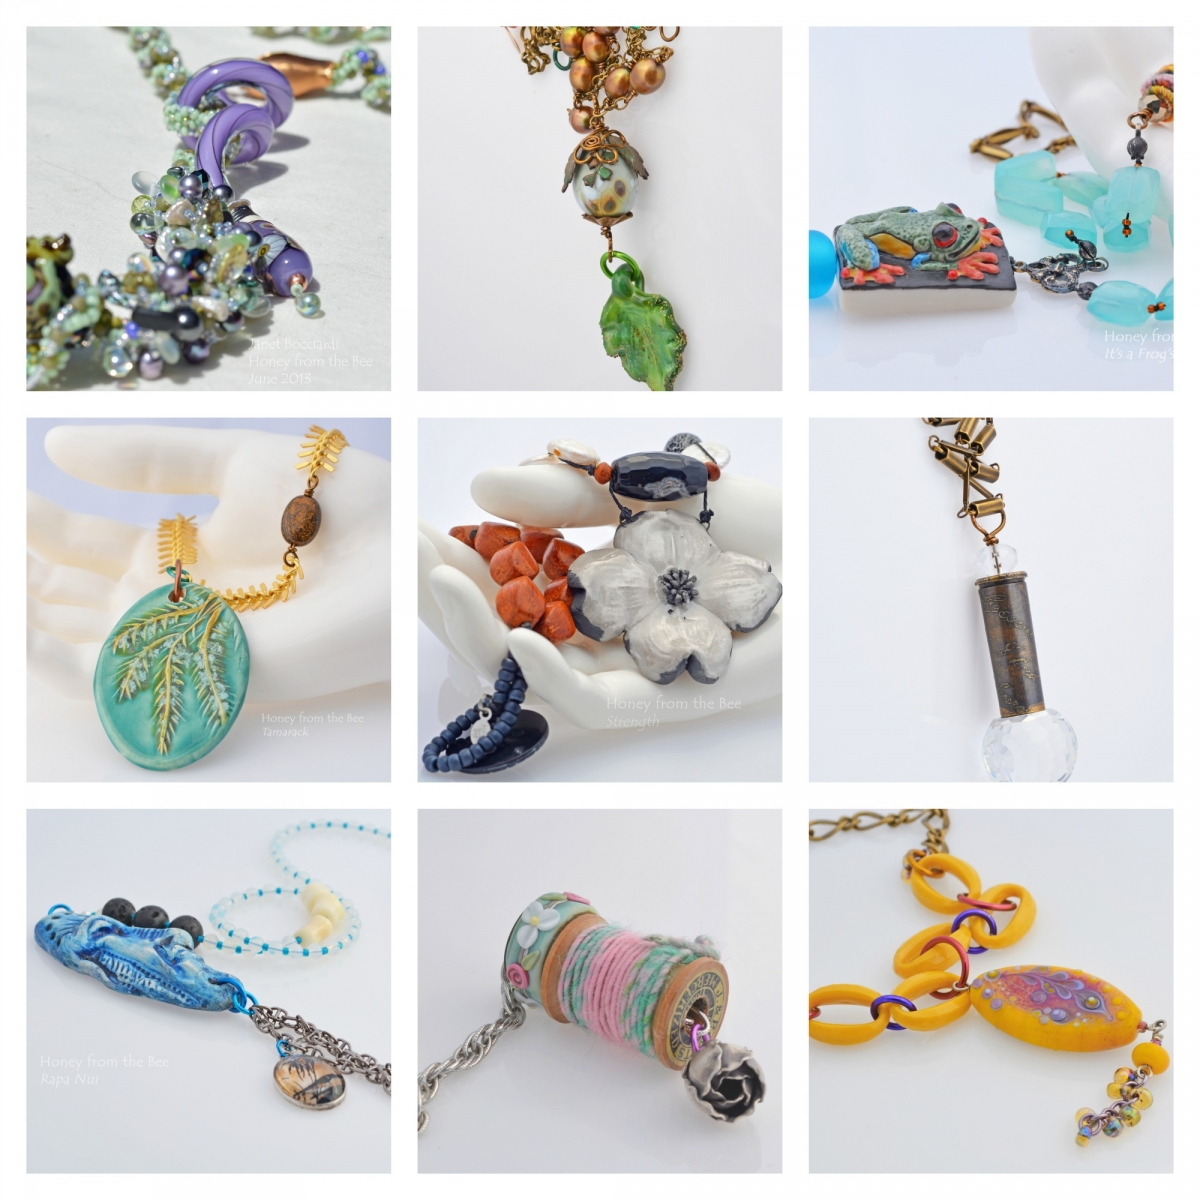 Artisan Necklaces 2013 by Honey from the Bee